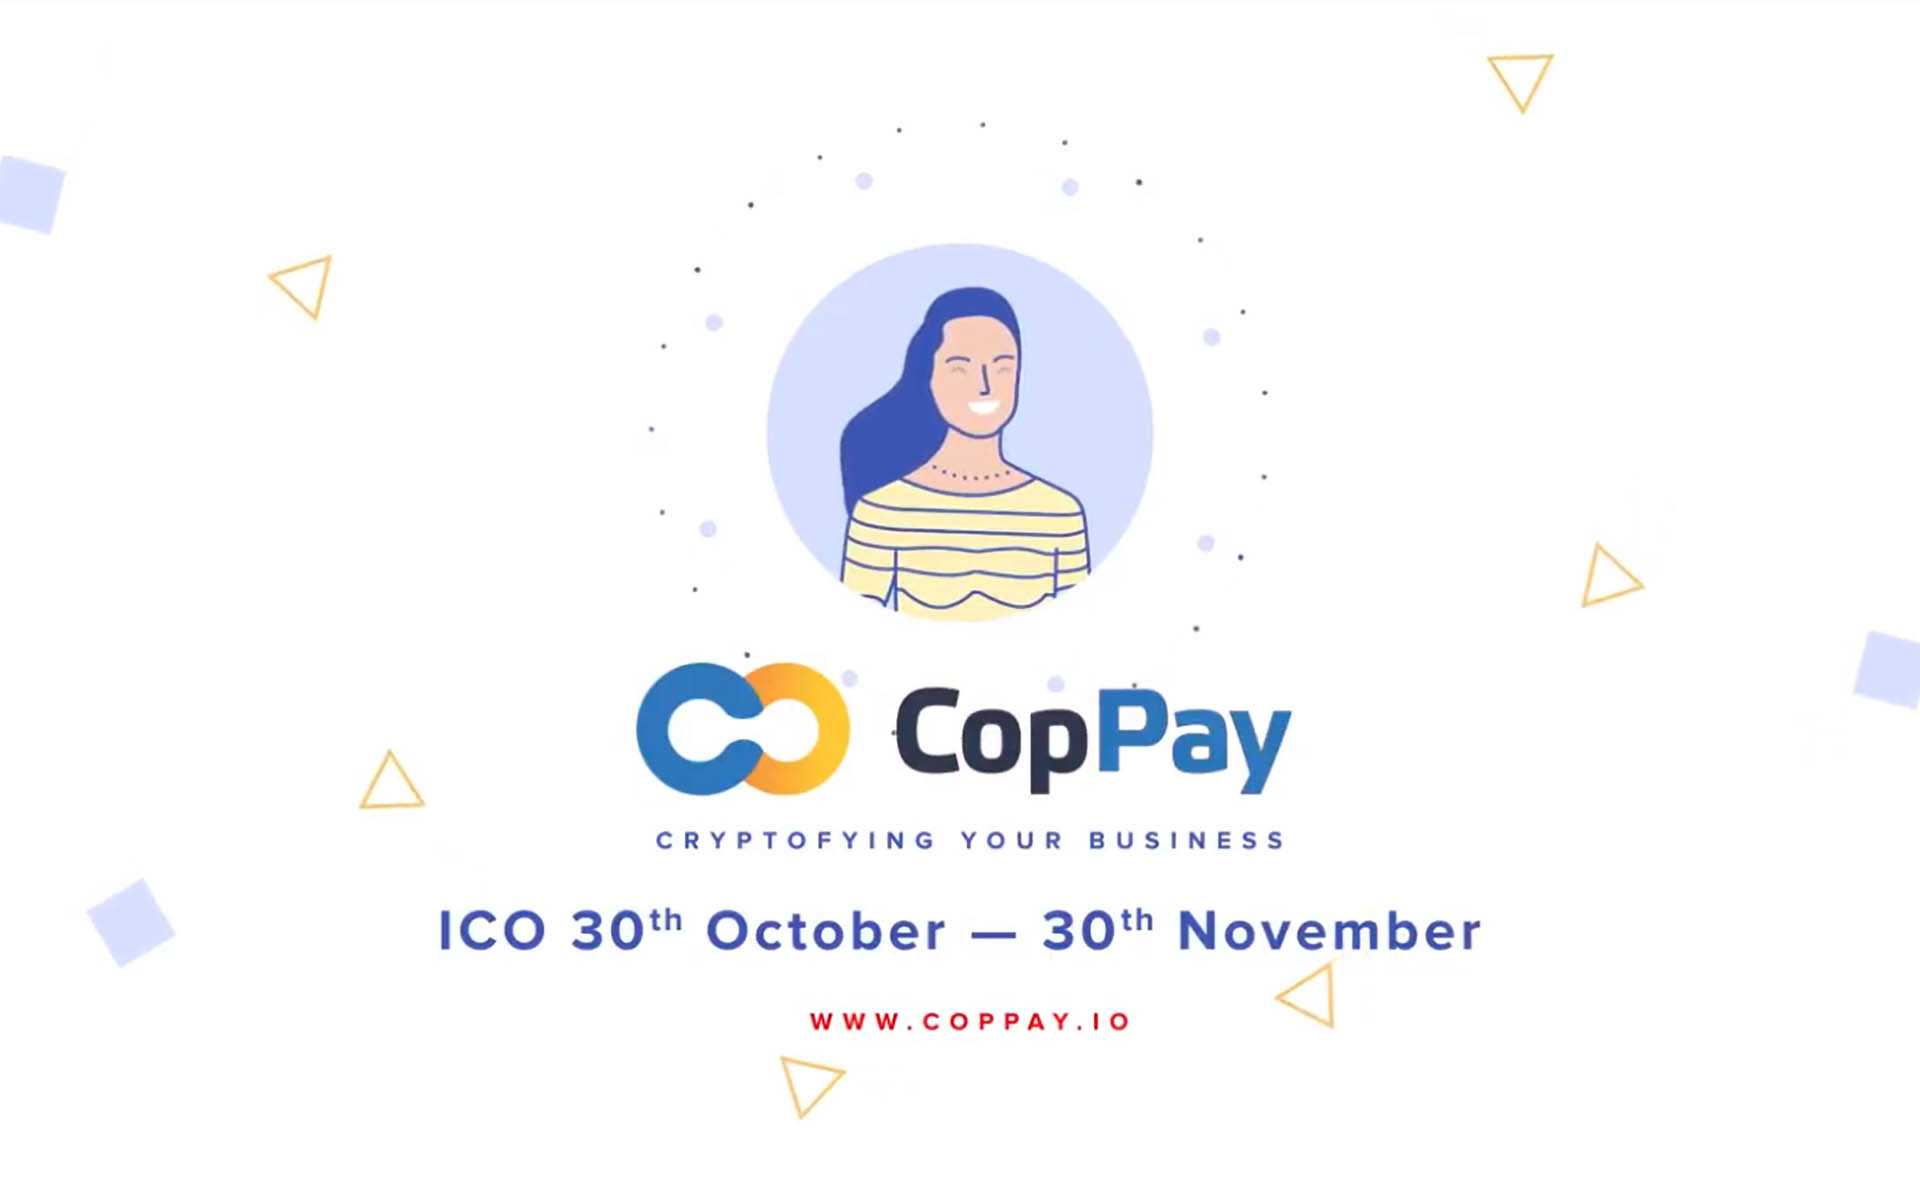 CopPay - New Kid On The Blockchain